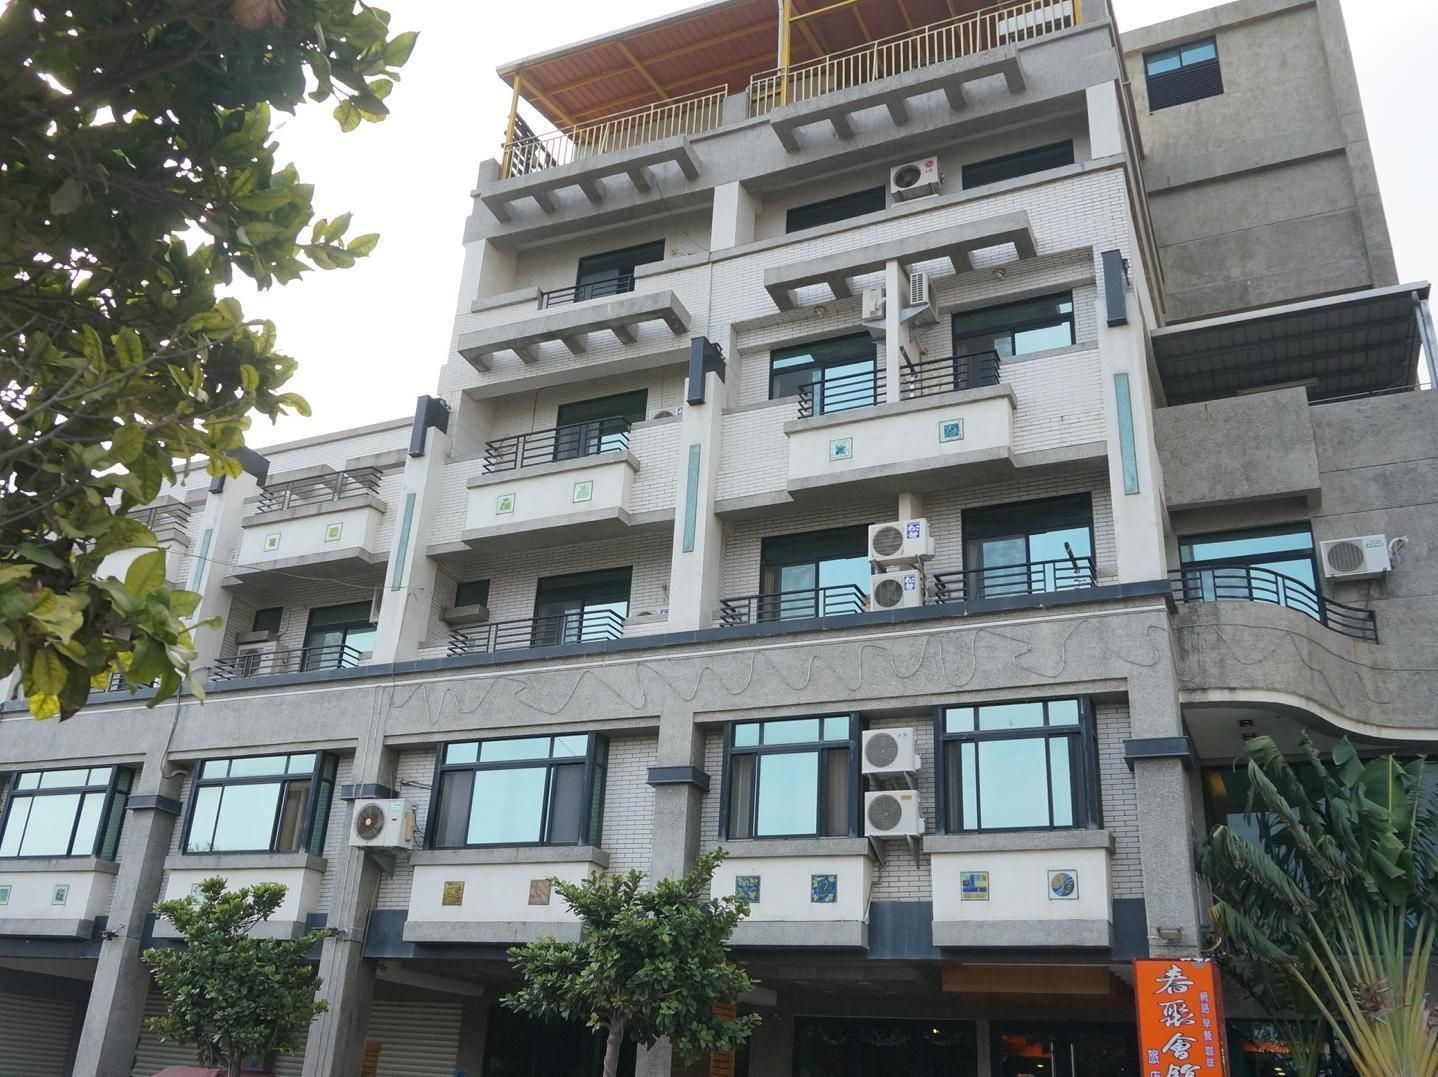 Kenting Spring Viva Hotel Taiwan Asia Spring Viva Hotel Is A Popular Choice Amongst Travelers In Kenting Whether Exploring Or Just Passing With Images Hotel Kenting Asia